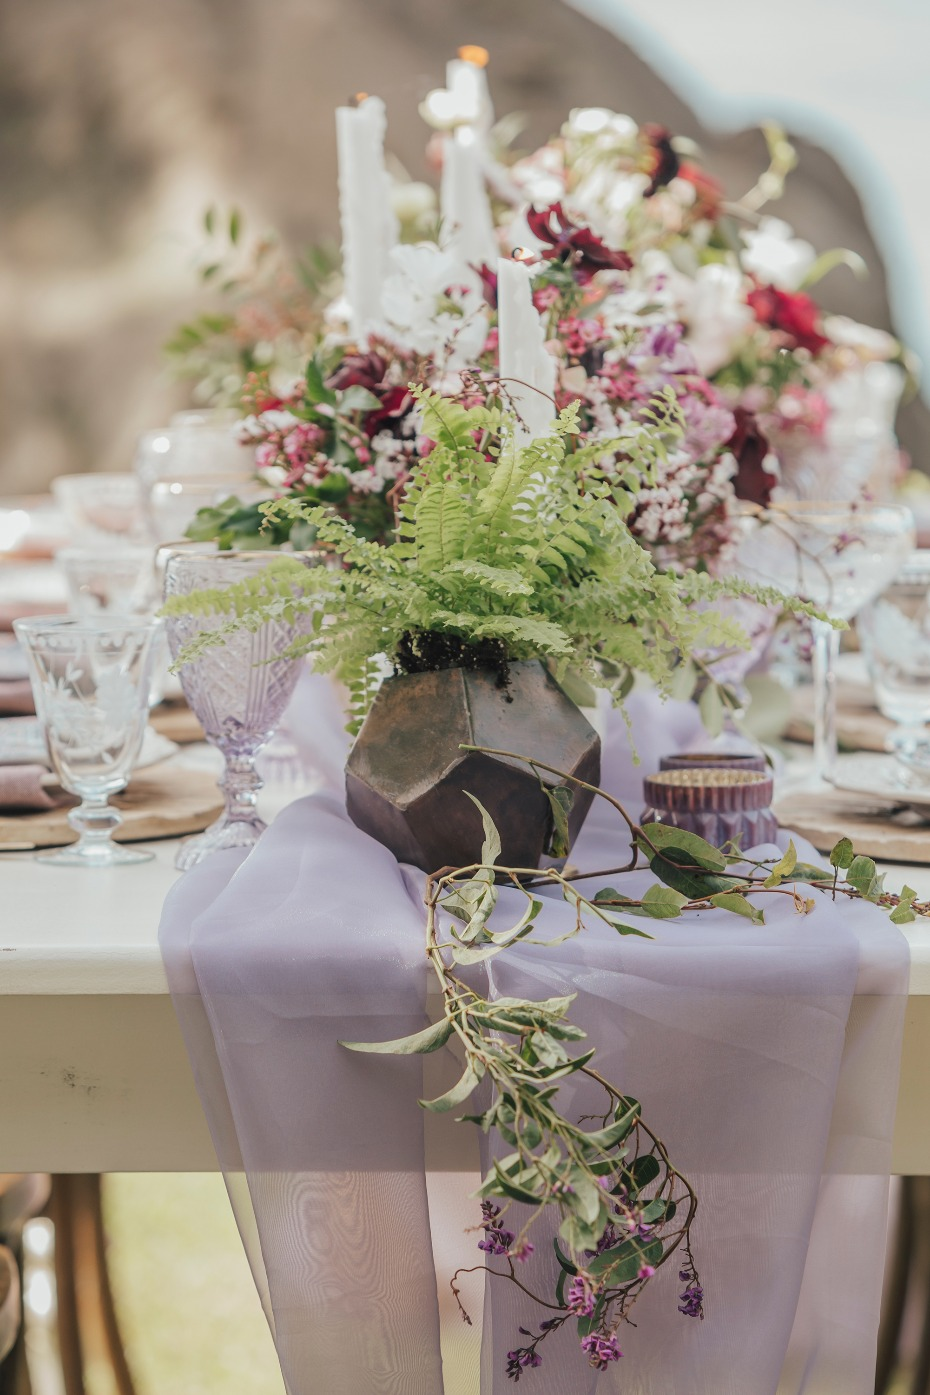 Add potted plants to your tablescape